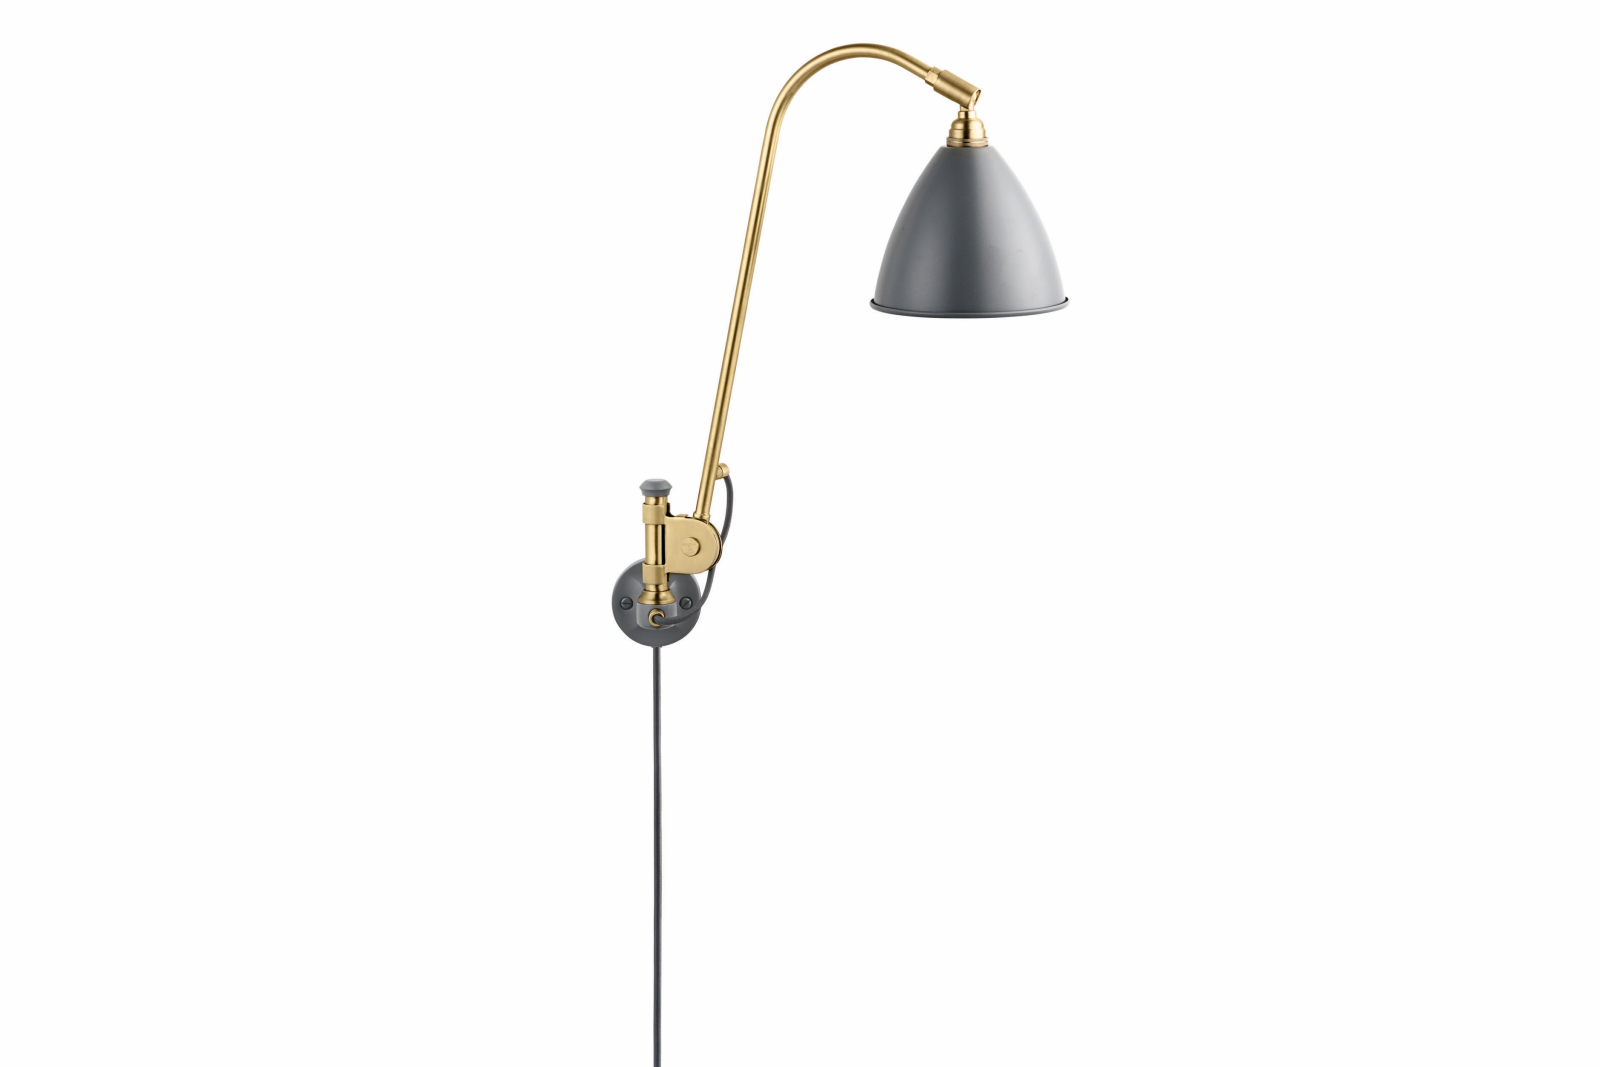 Bestlite BL6 Wired Wall Light Grey and Brass